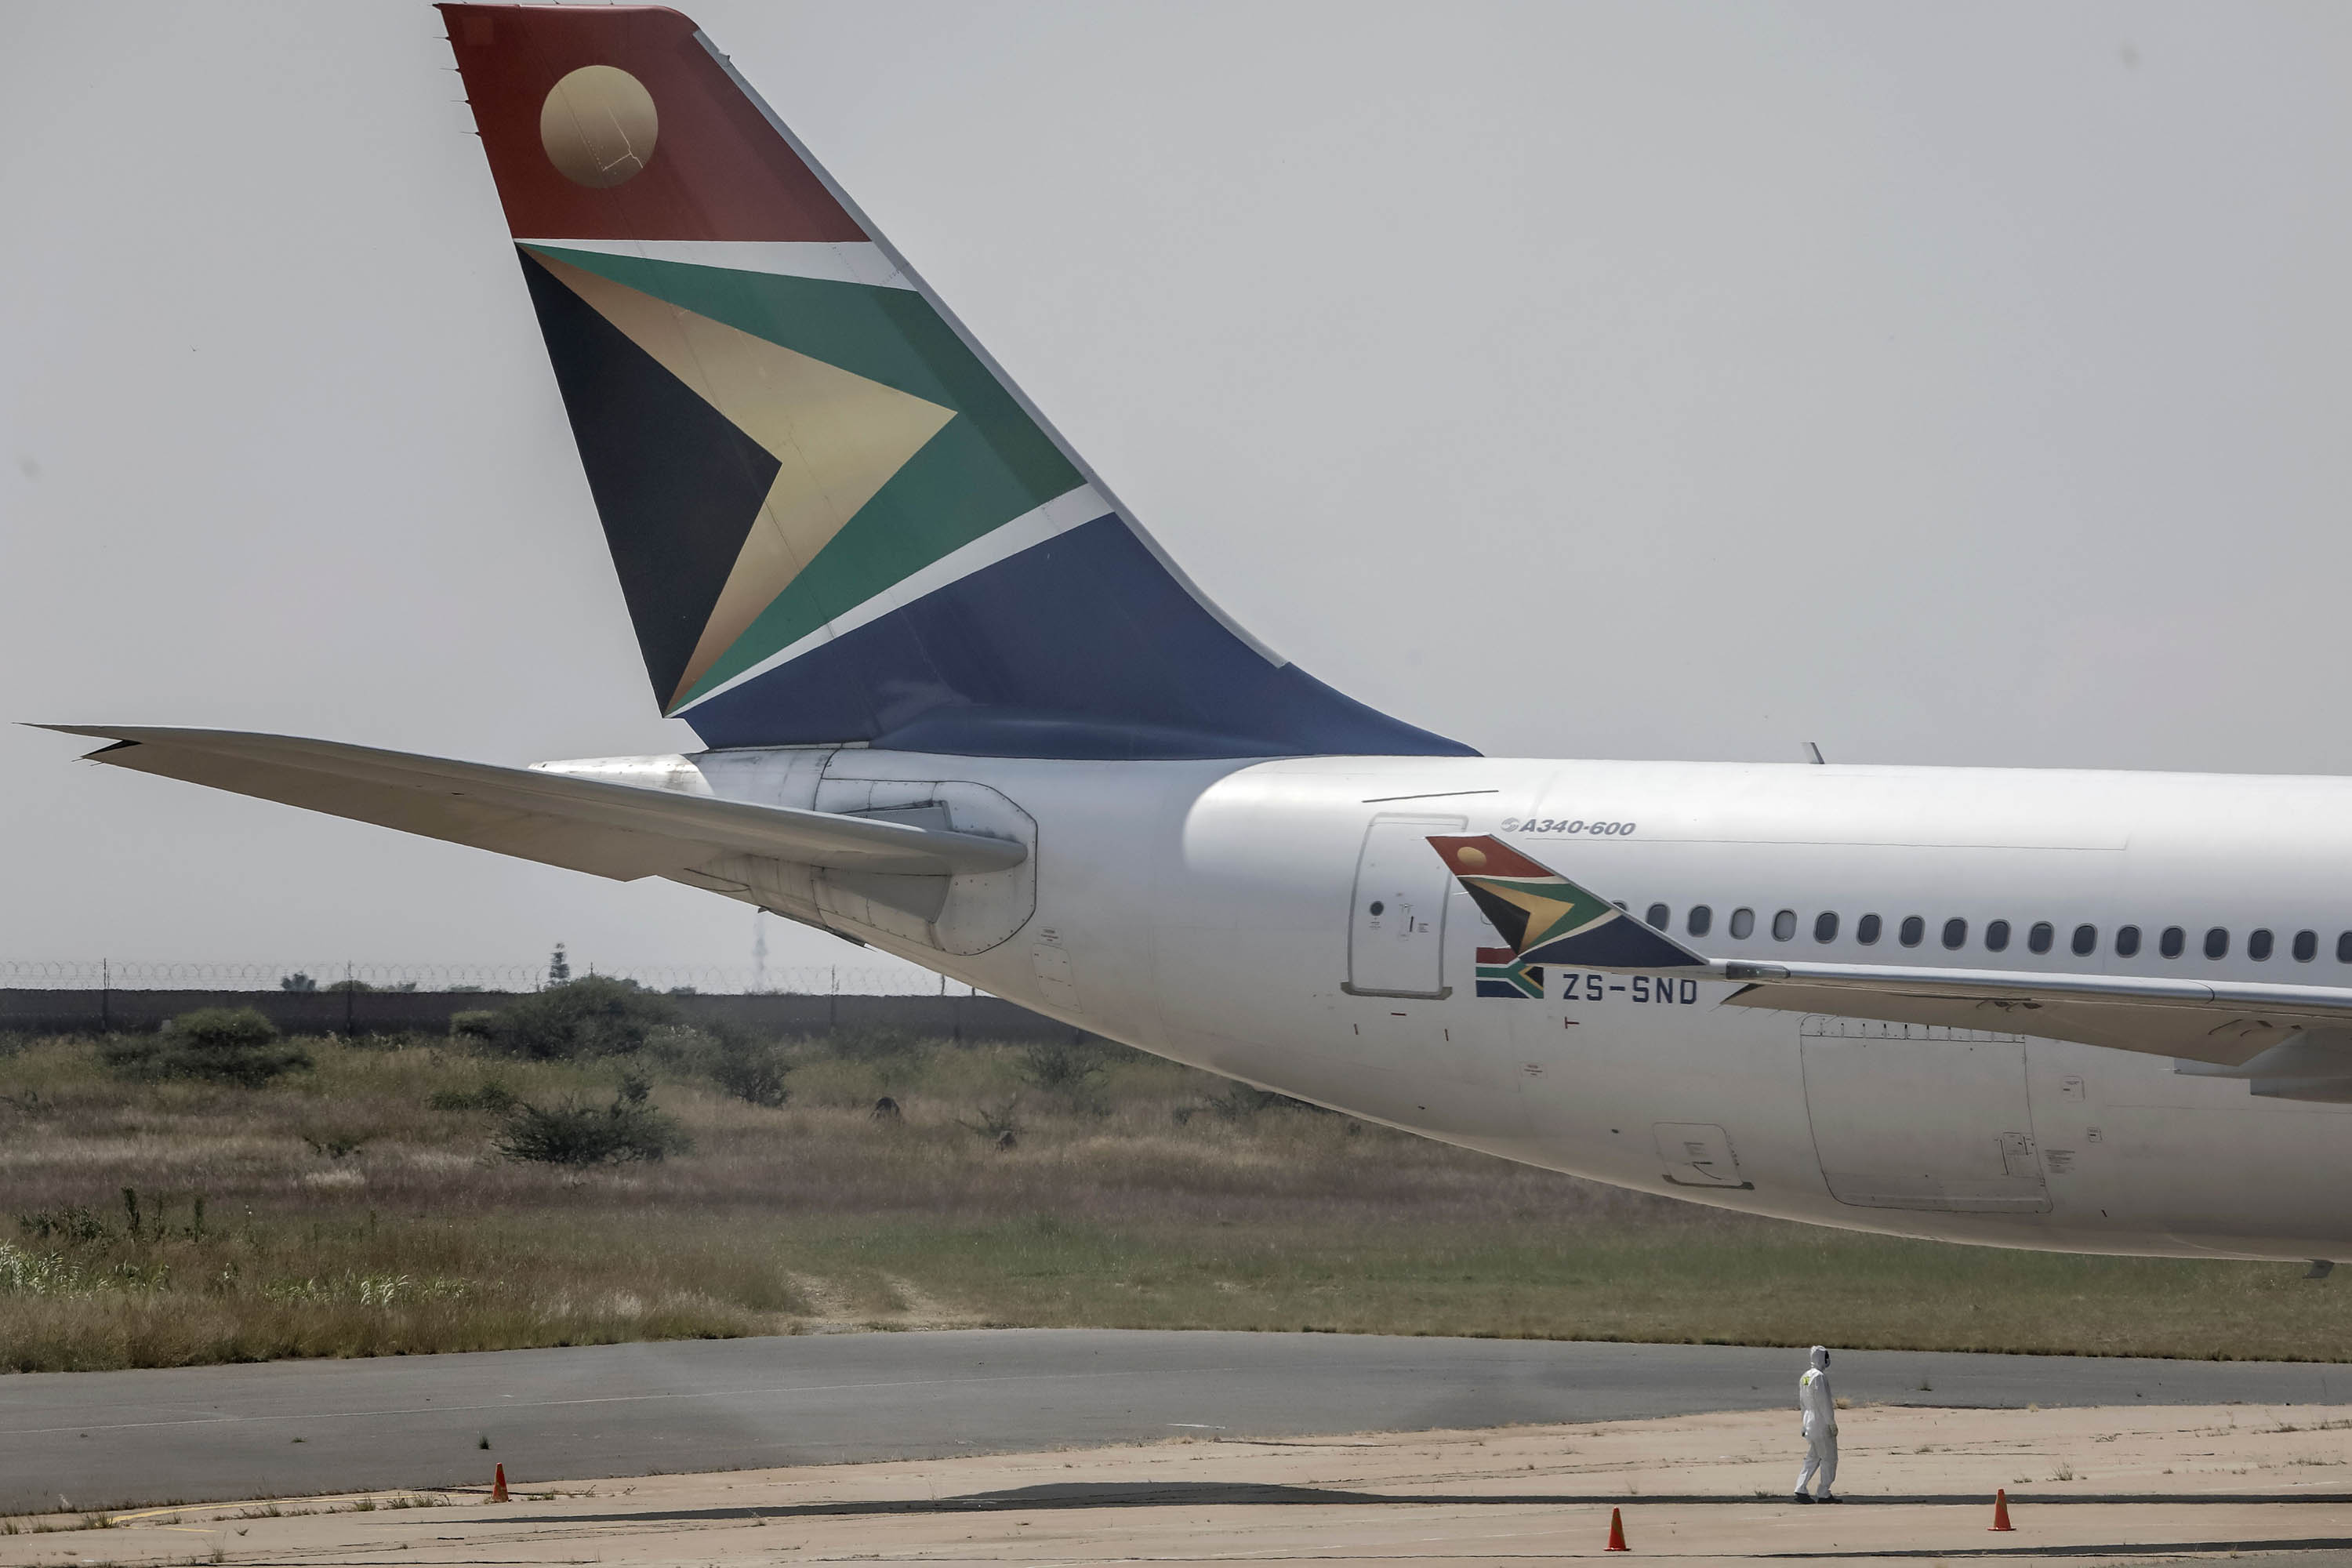 A worker wearing a protective suit stands below a South African Airways plane on March 14, as it arrives in Polokwane, South Africa.